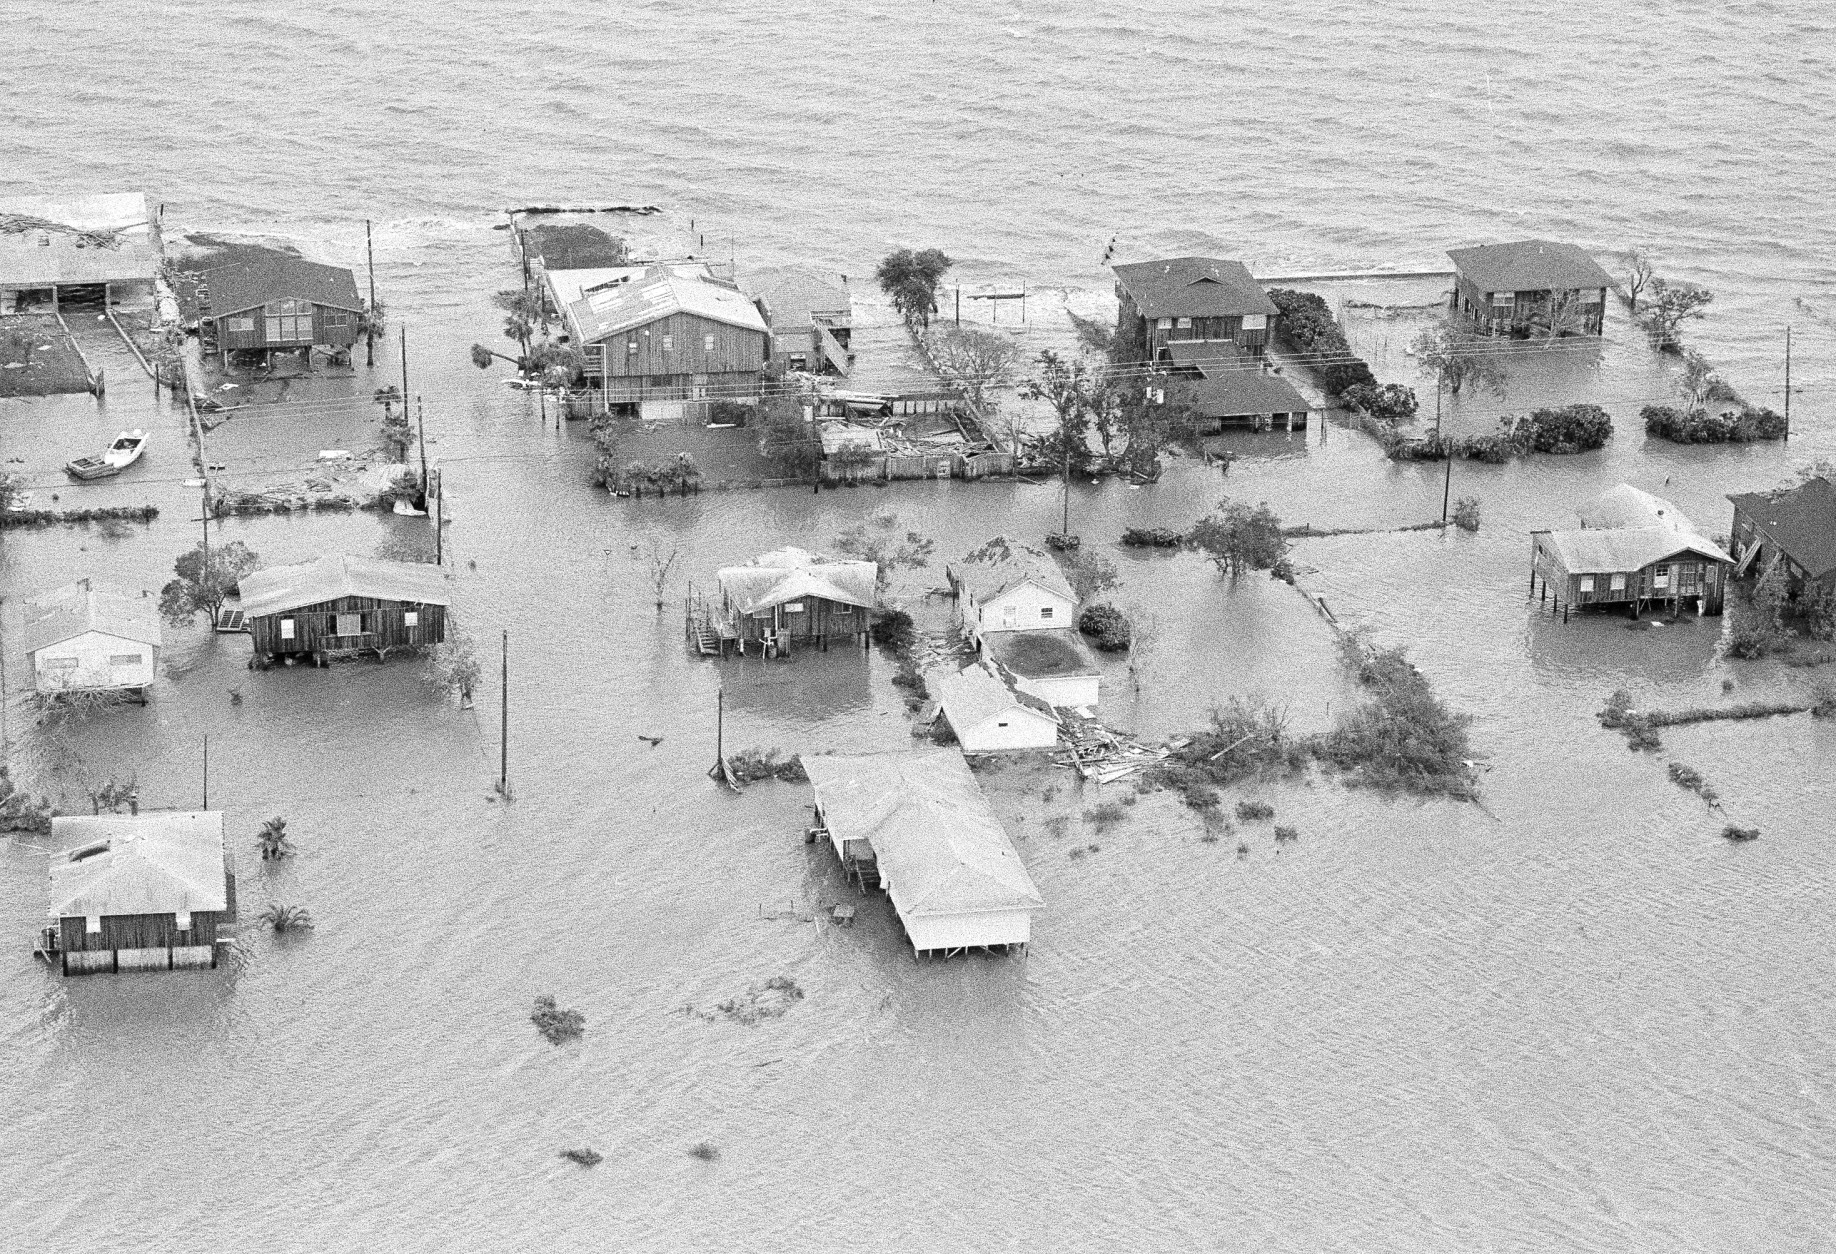 Galveston Bay over flows its banks into Seabrook, Texas early Thursday morning, August 19, 1983. The bay waters were forced ashore due to Hurricane Alicia which came ashore packing winds in excess of 115 miles per hour. (AP Photo)